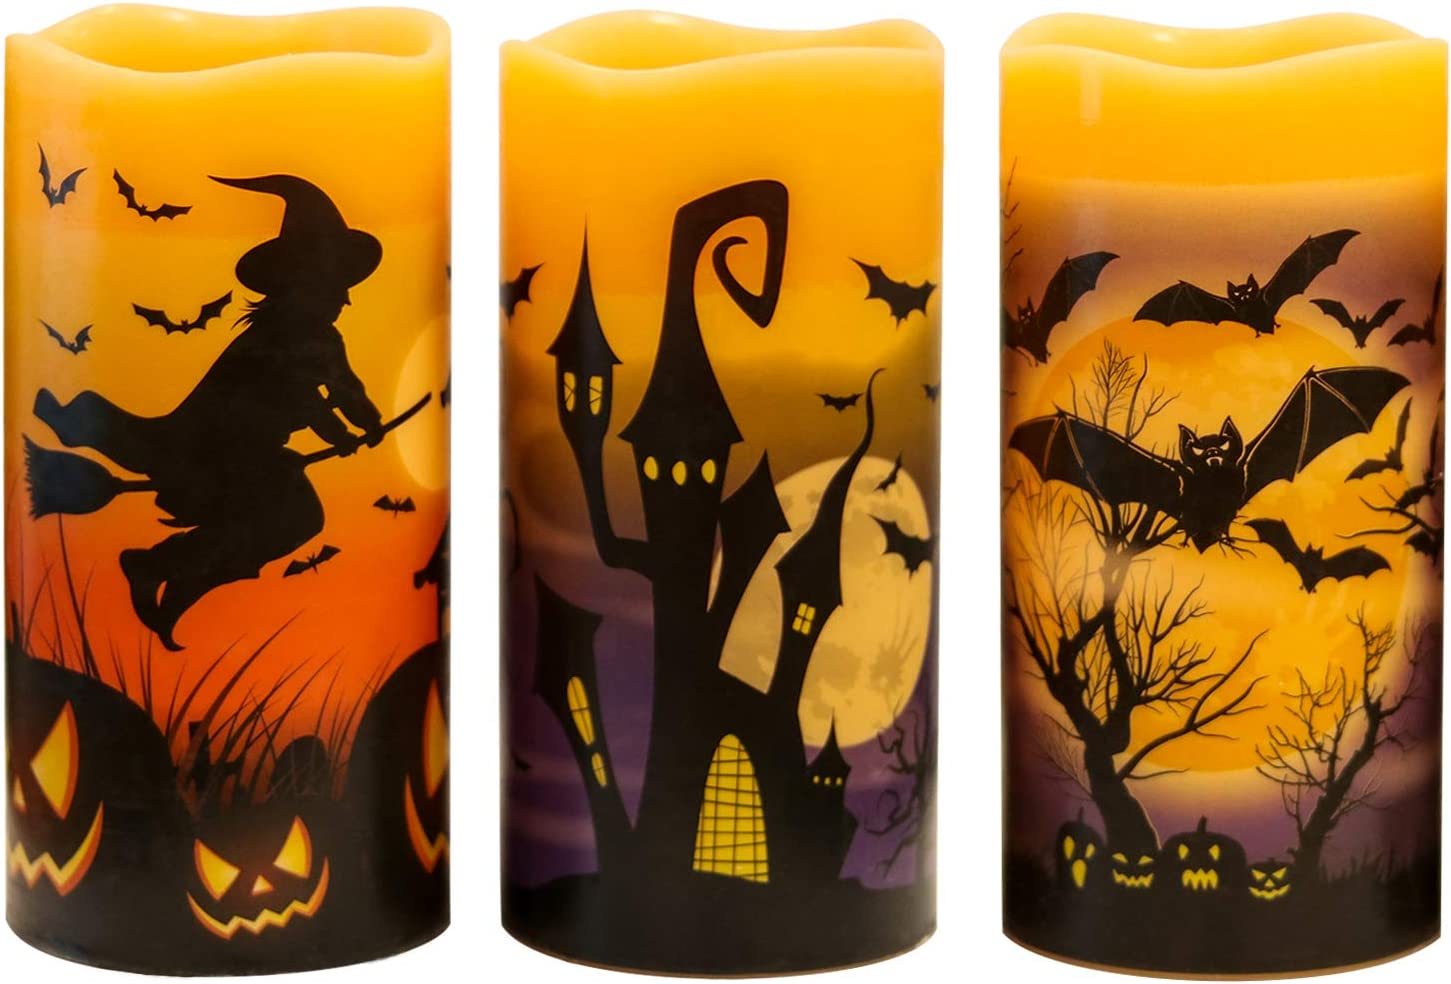 GenSwin Halloween Battery Flameless Candles with 6 Hour Timer, Real Wax Flickering LED Candles Set of 3 Bats, Castle, Witch Decal for Halloween Home Decoration Gifts(3 x 6 Inch)